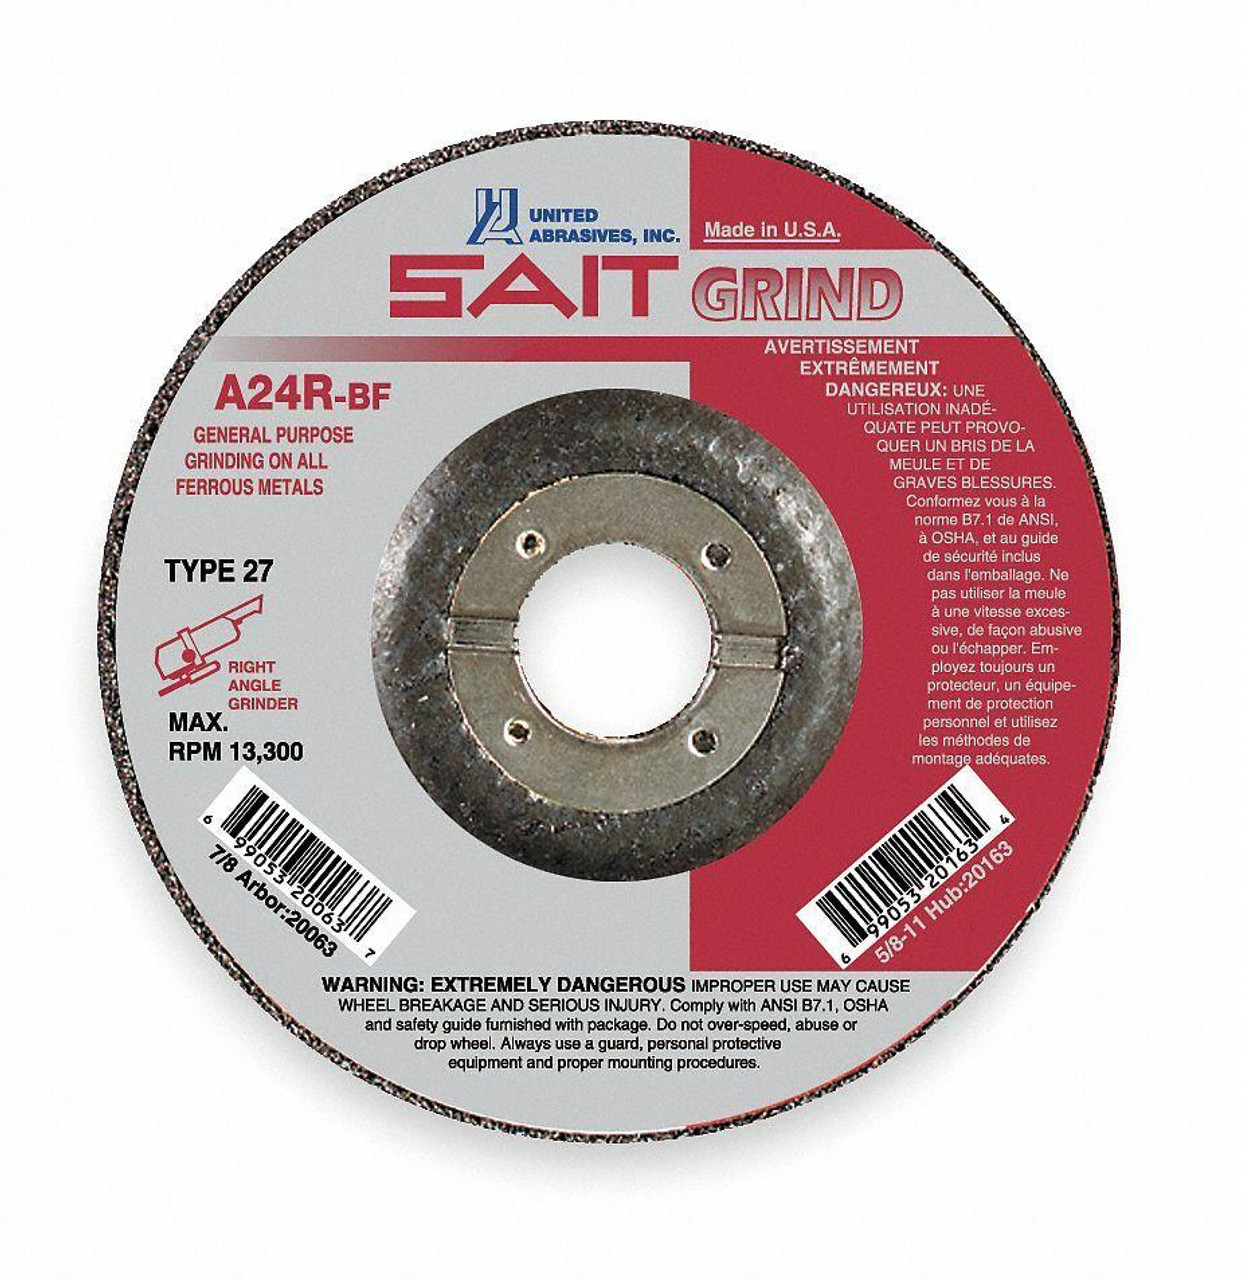 United Abrasives Sait 20063 4.5 x 1/4 x 7/8 Type 27 A24R Depressed Center Grinding Wheel - Box of 25